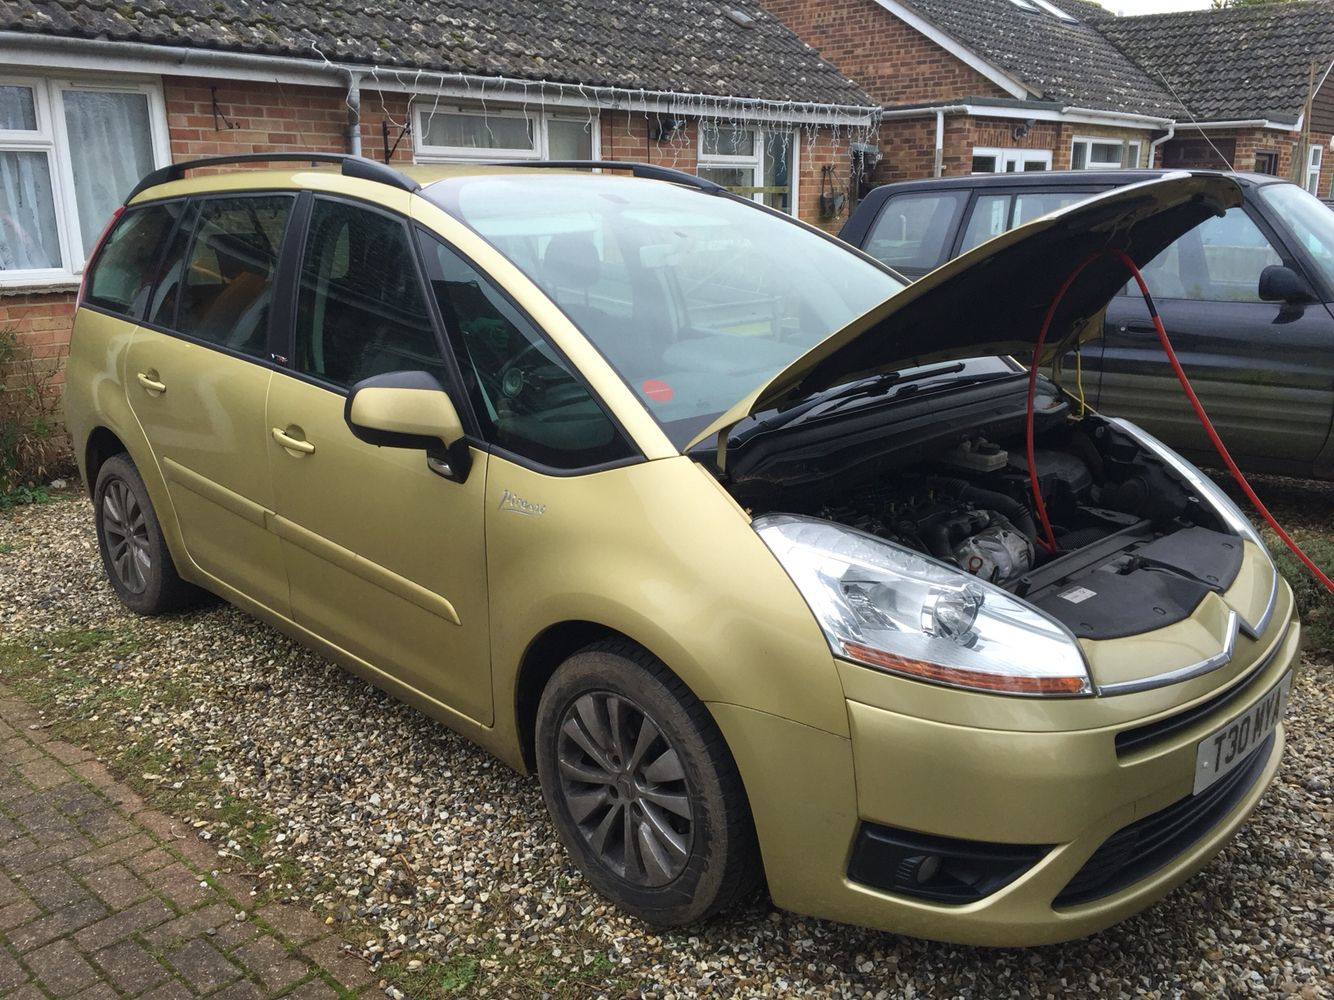 Citroen C4 Picasso 1.6 HDi gets an engine carbon clean to